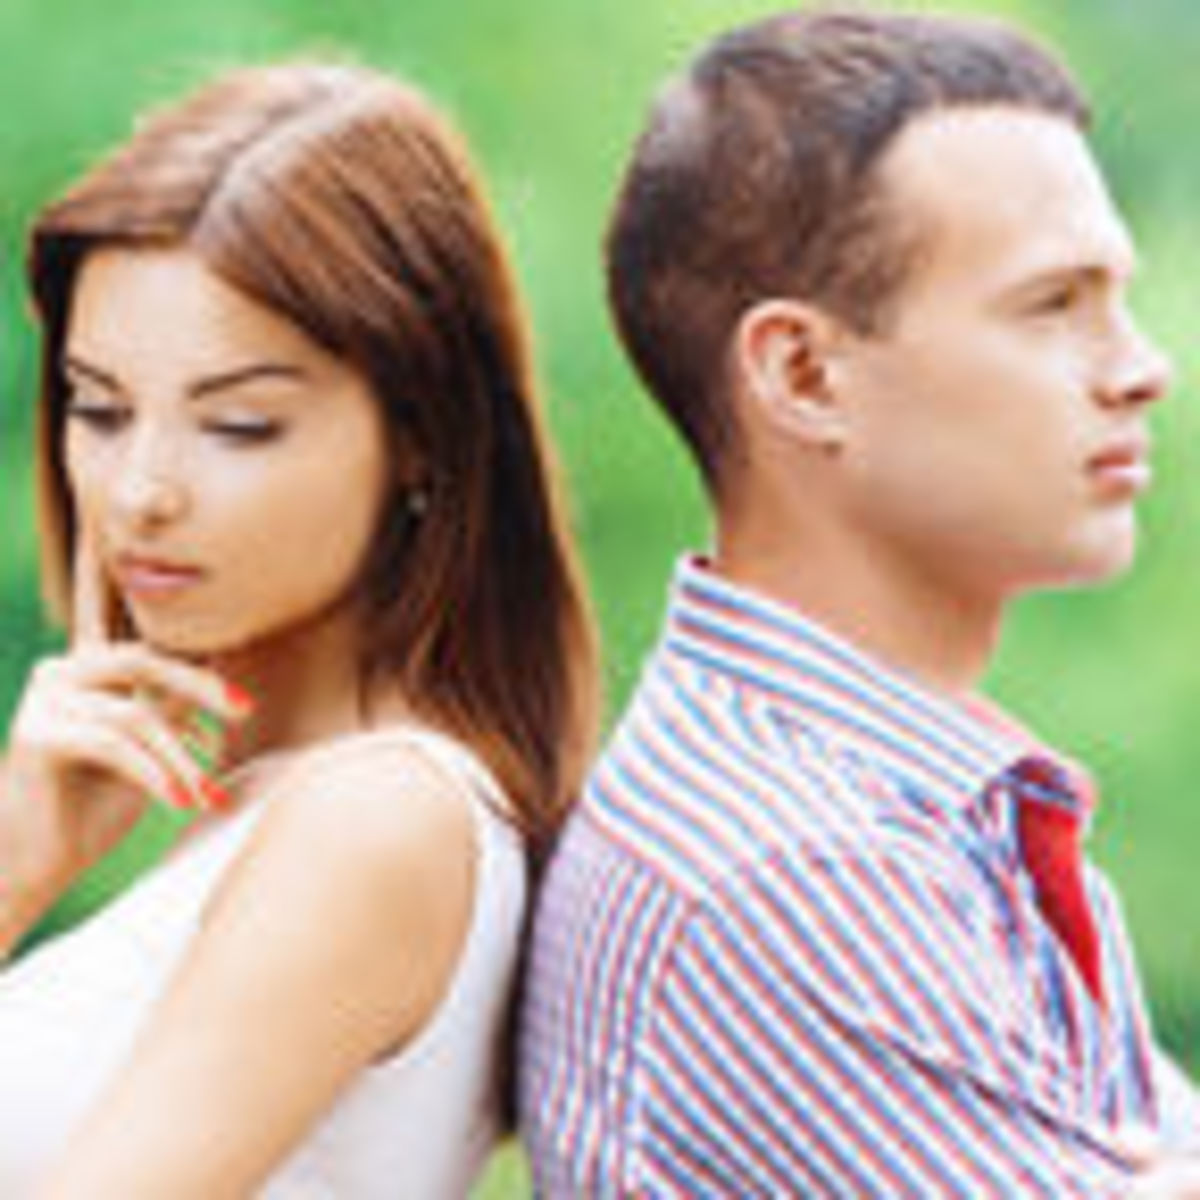 Women Need Love and Men Need Respect? | Psychology Today